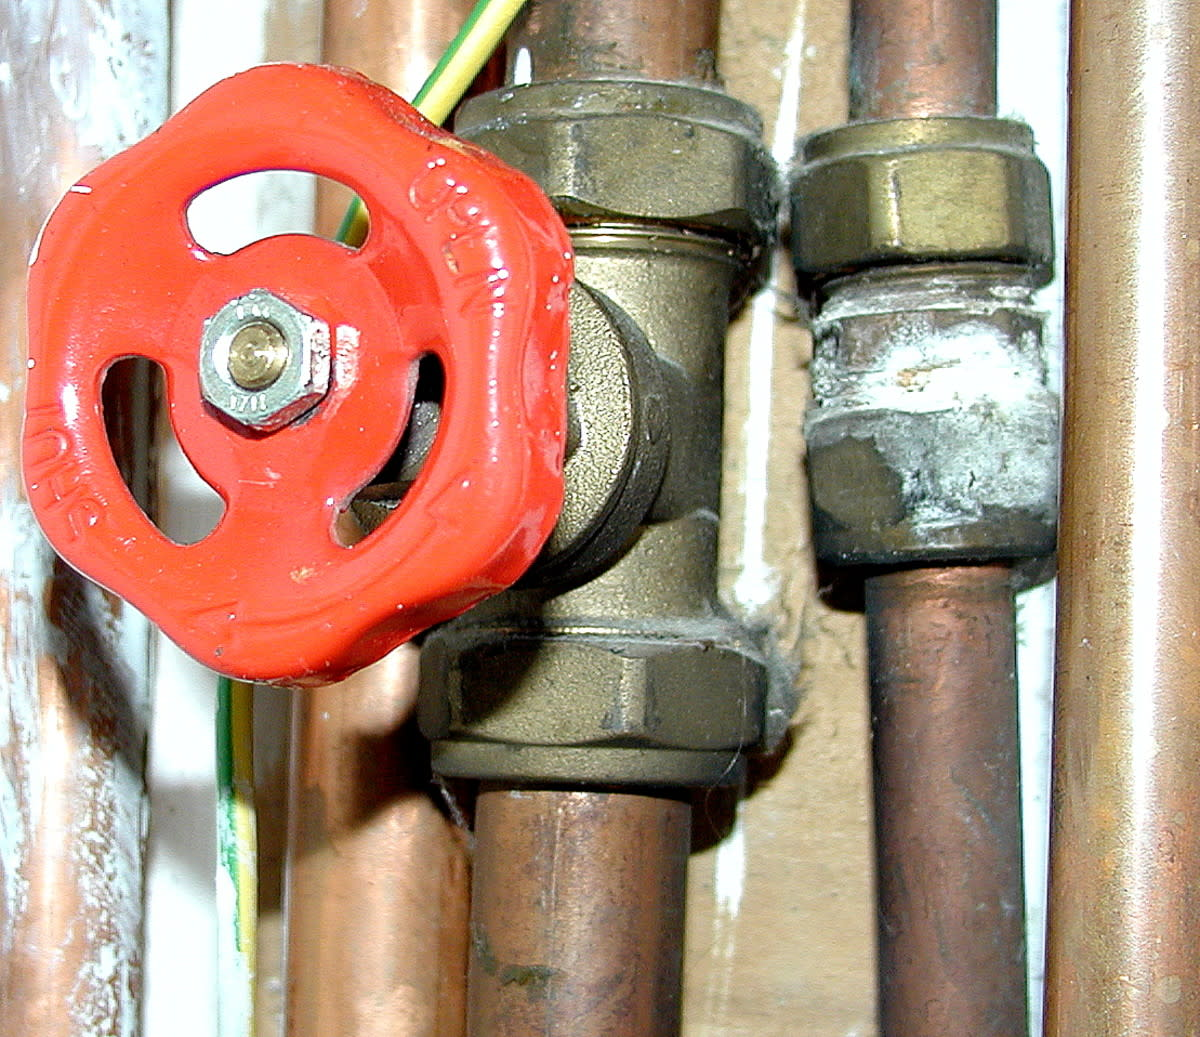 Alternatively, gate valves may be used for controlling flow. These are turned off like a tap by twisting the wheel knob clockwise.